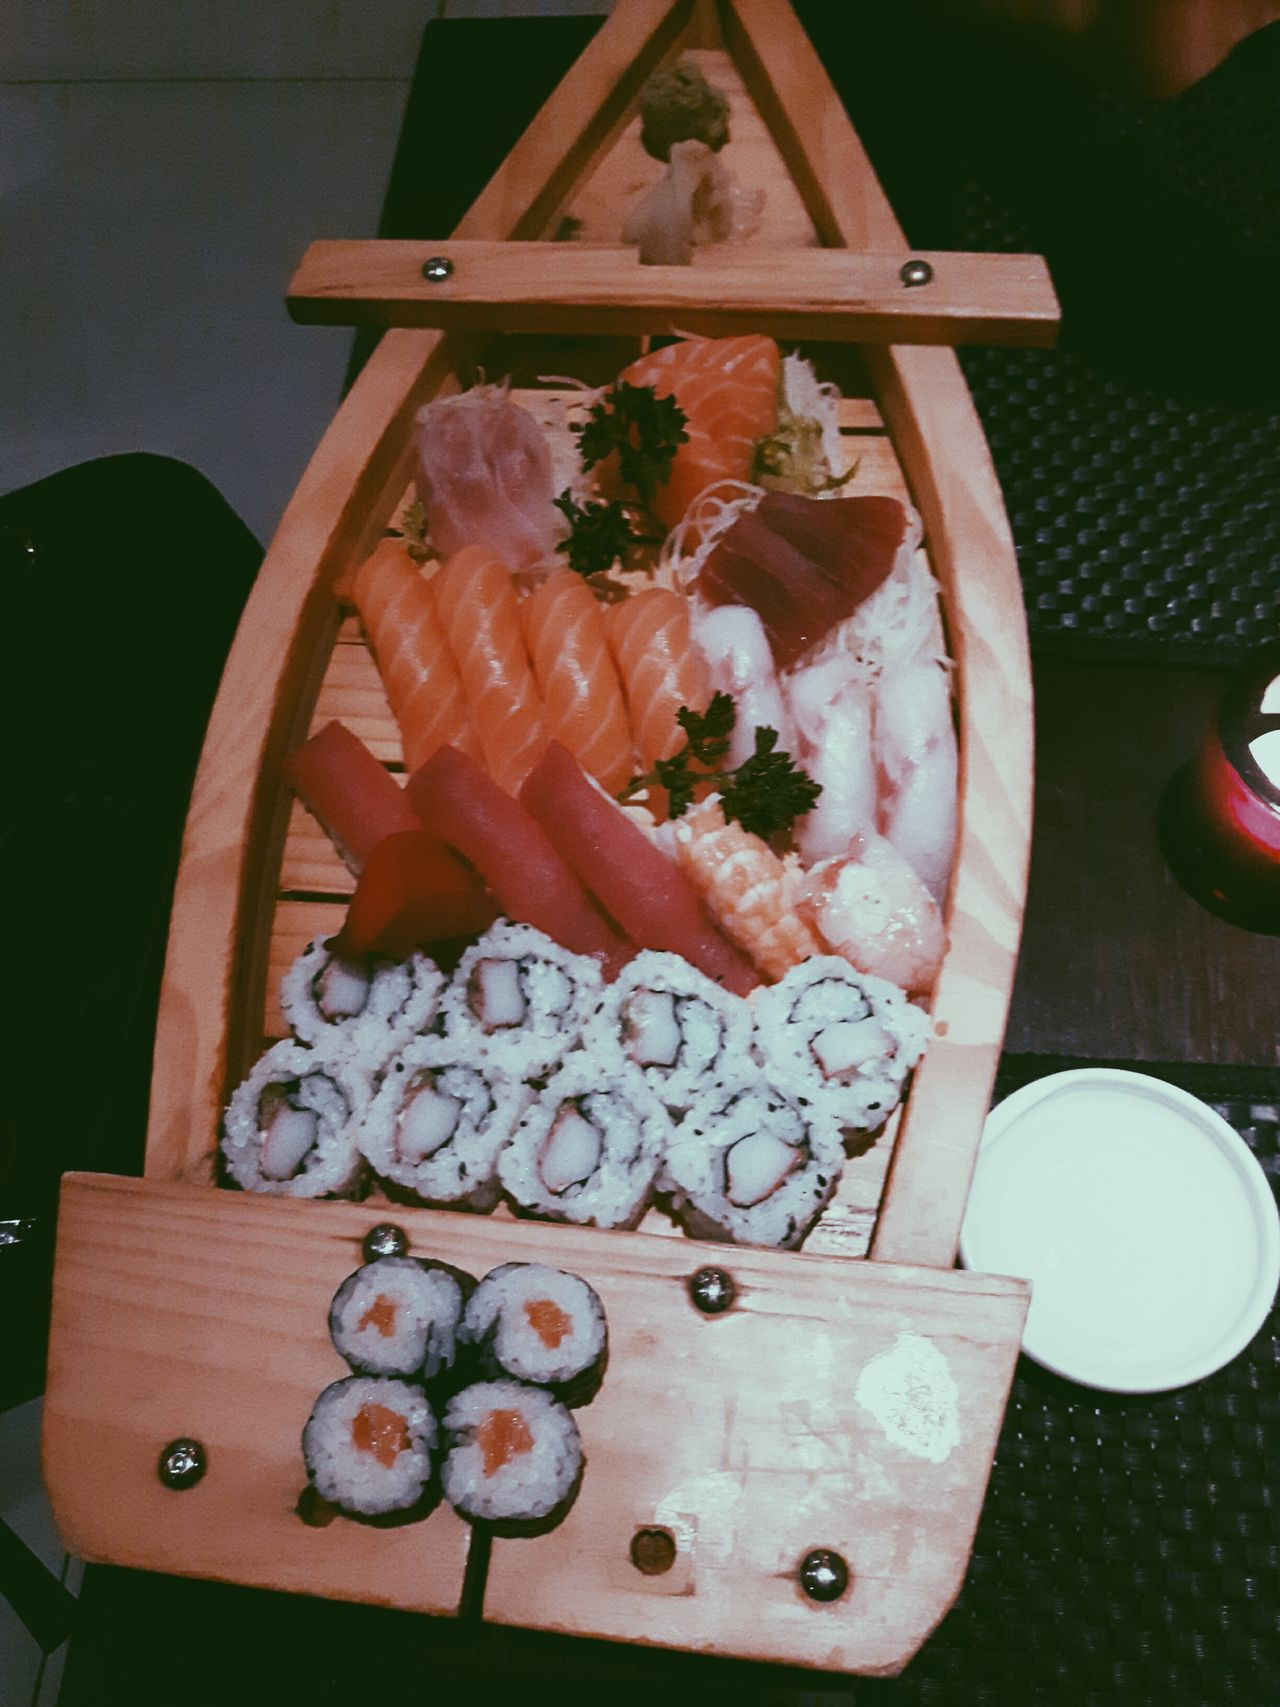 Sushi Lovers 💗 Food Day EyeEm Gallery Photo Eyeemphoto Photography Lifestyles Everywhere Street Real People Sushi Lover Sushi Treviso, Italy Couple Relationship Freshness Indoors  No People